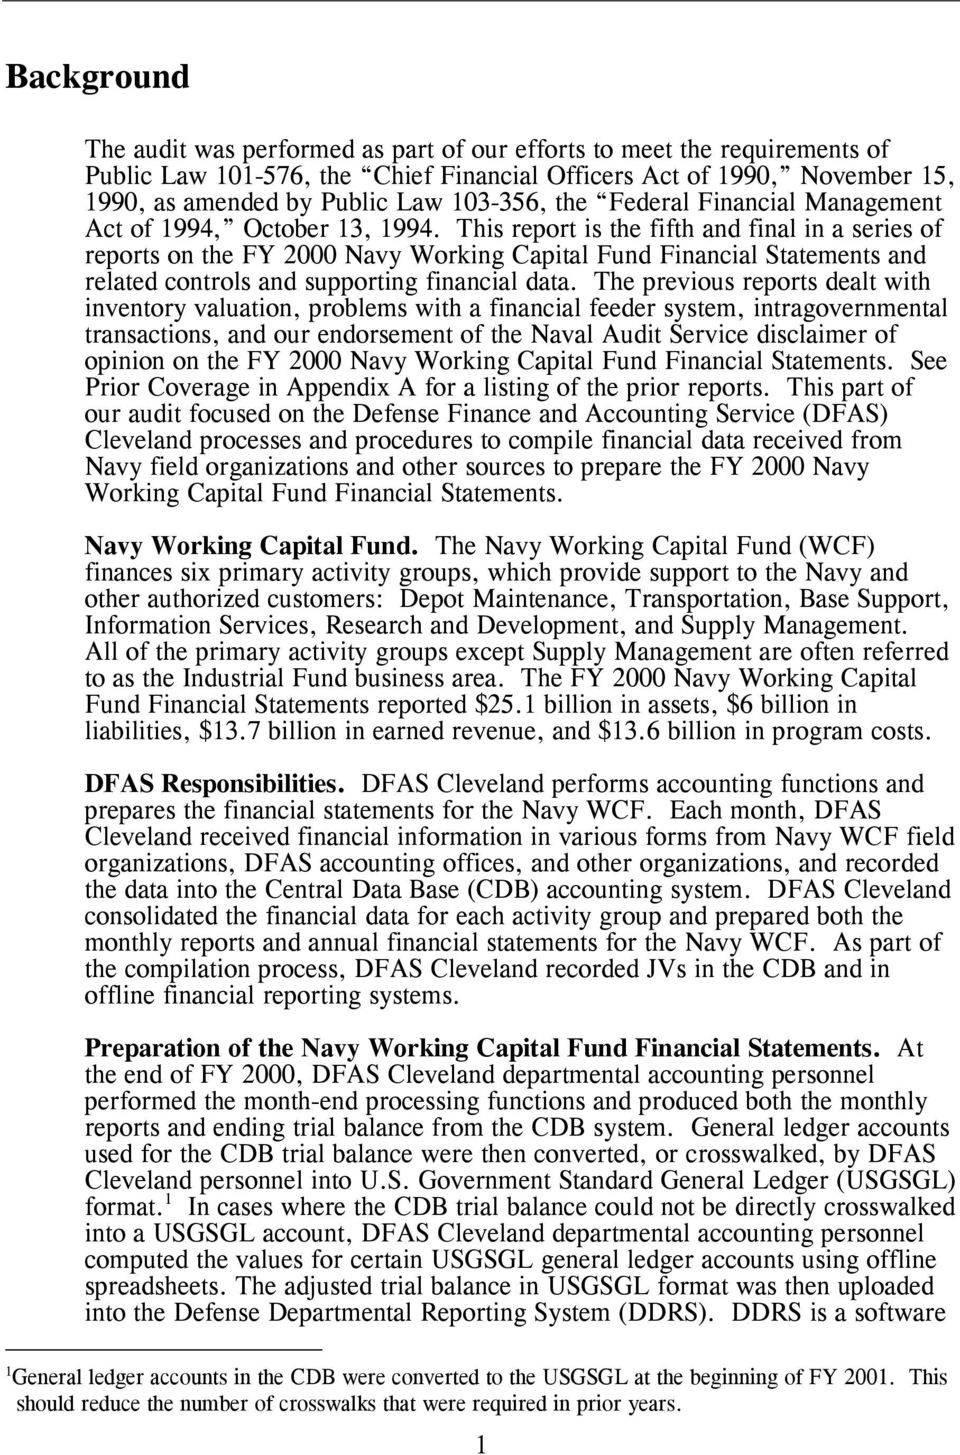 This report is the fifth and final in a series of reports on the FY 2000 Navy Working Capital Fund Financial Statements and related controls and supporting financial data.